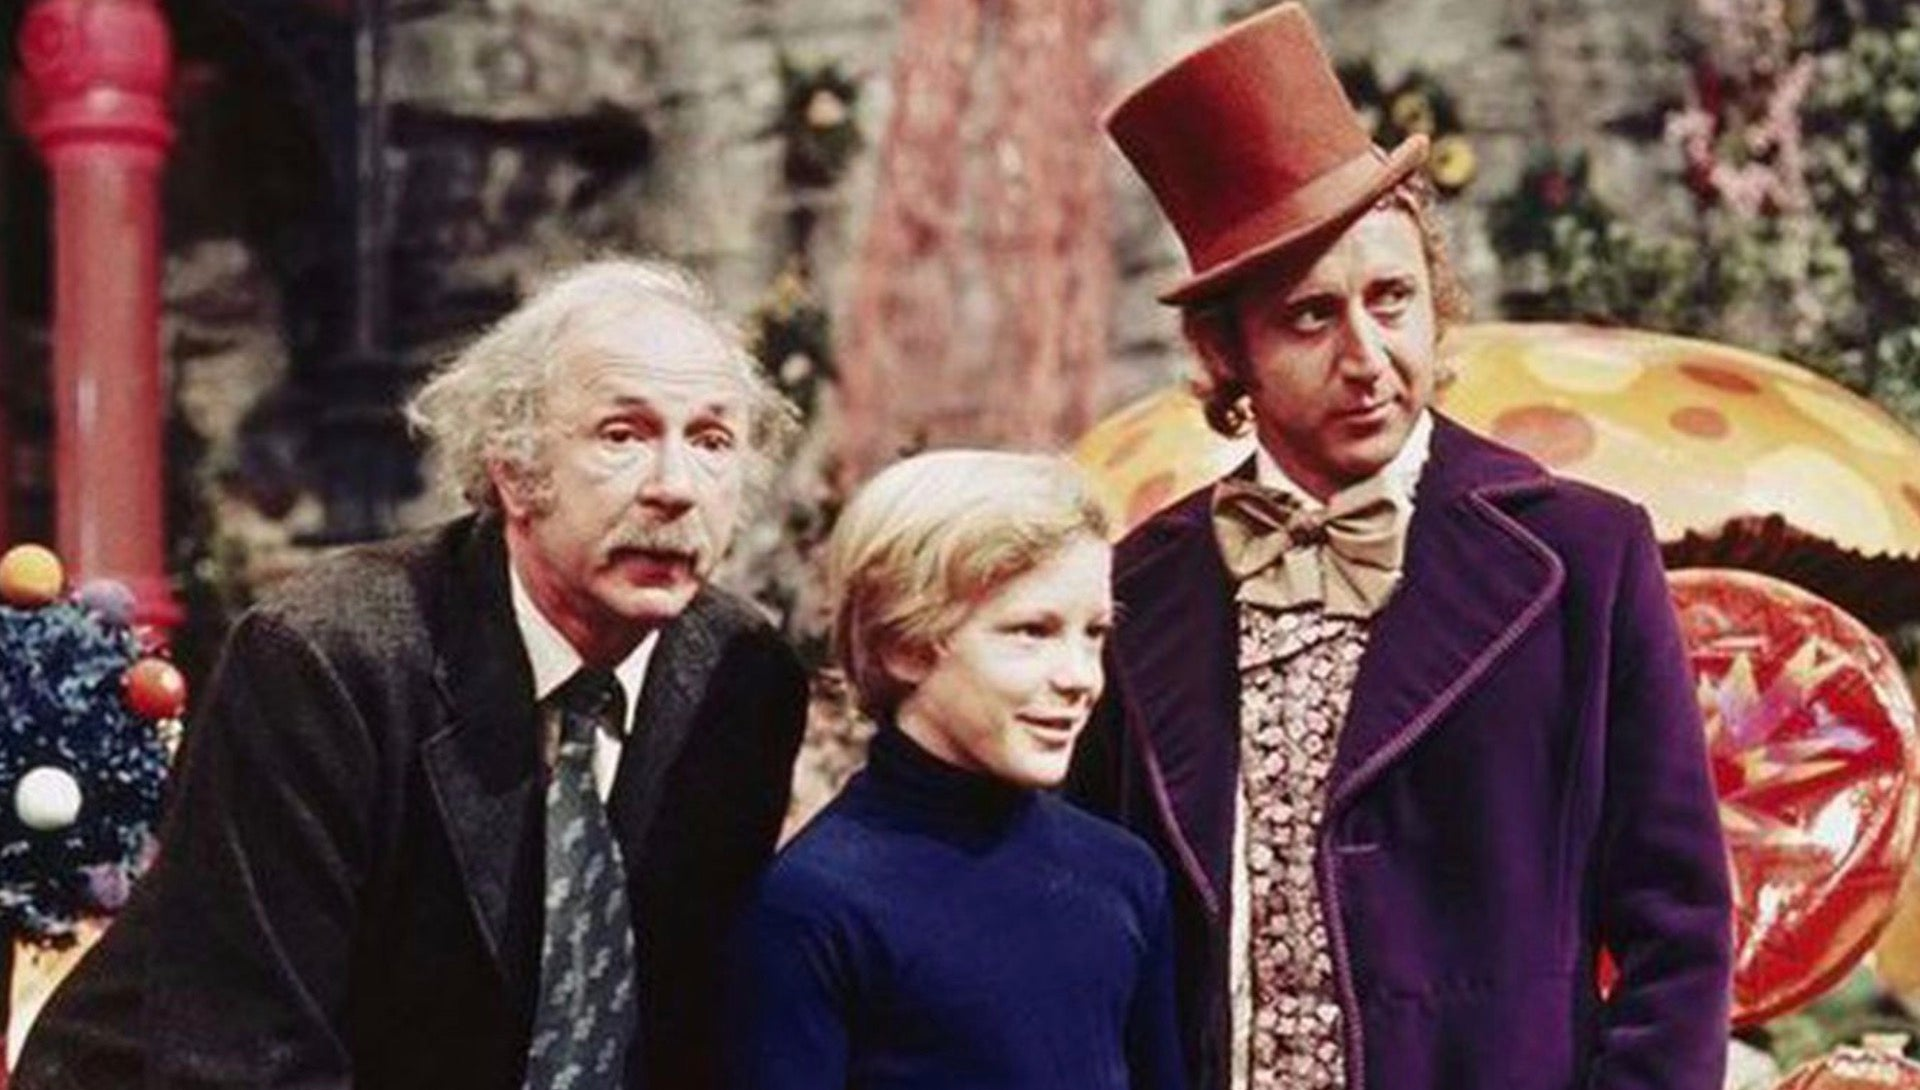 A New Willy Wonka Movie Is Coming From The Director Of Paddington